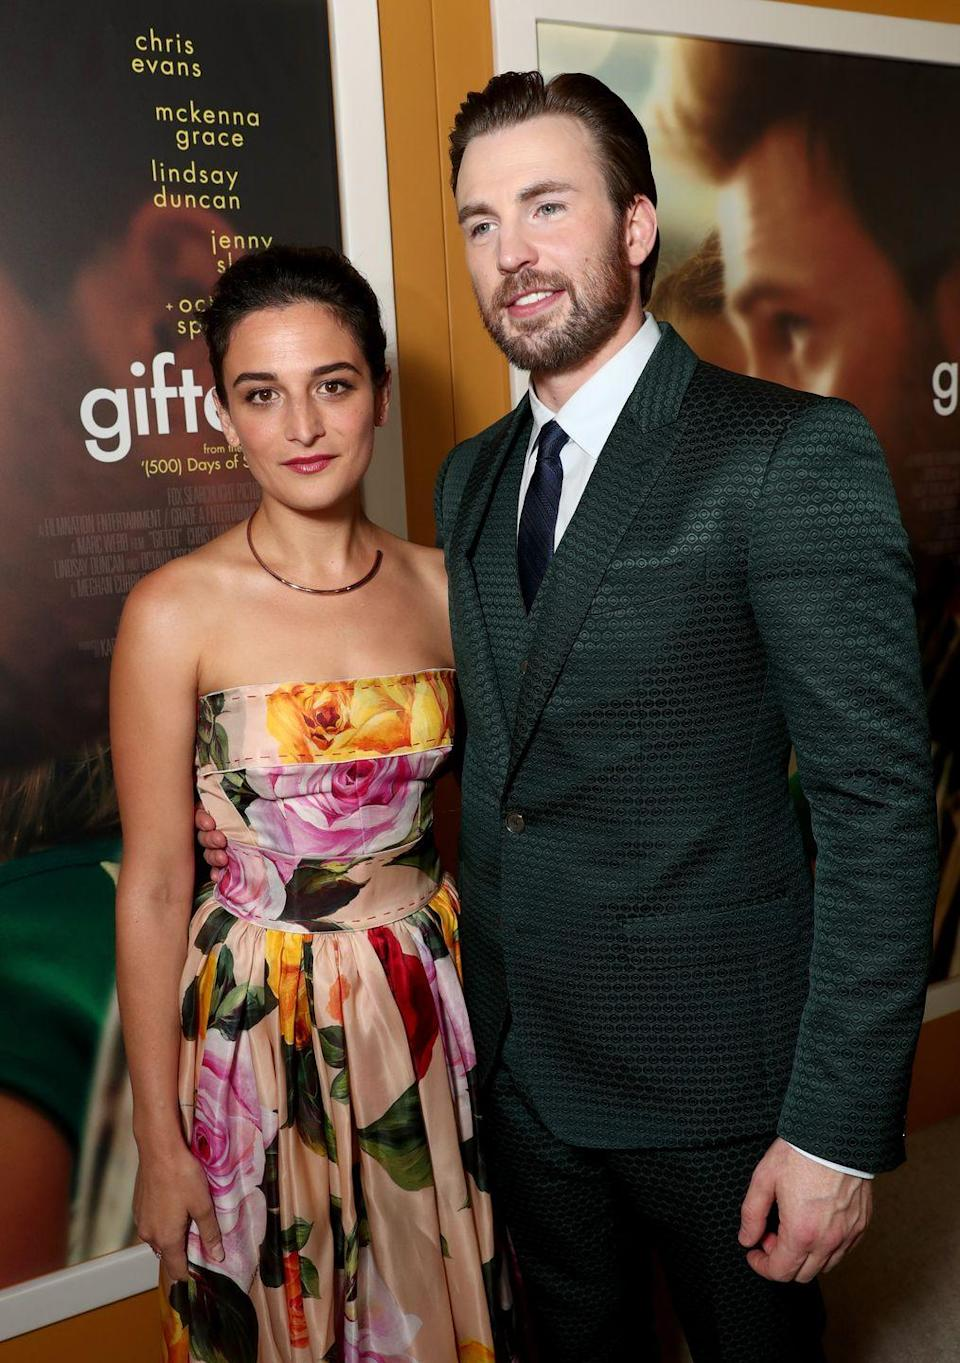 """<p>Slate and Evans met on the set of <em>Gifted</em> and just as their characters fell in love on screen, a romance started to form in real life. Sadly, the pair ended things before the movie officially premiere but continued to work together to promote the movie. <a href=""""https://www.elle.com/culture/a19562480/jenny-slate-and-chris-evans-broke-up-again/"""" rel=""""nofollow noopener"""" target=""""_blank"""" data-ylk=""""slk:Even after their split"""" class=""""link rapid-noclick-resp"""">Even after their split</a>, Evans <span class=""""redactor-unlink"""">told</span> <em>People </em>that Slate was his """"favorite human.""""</p>"""